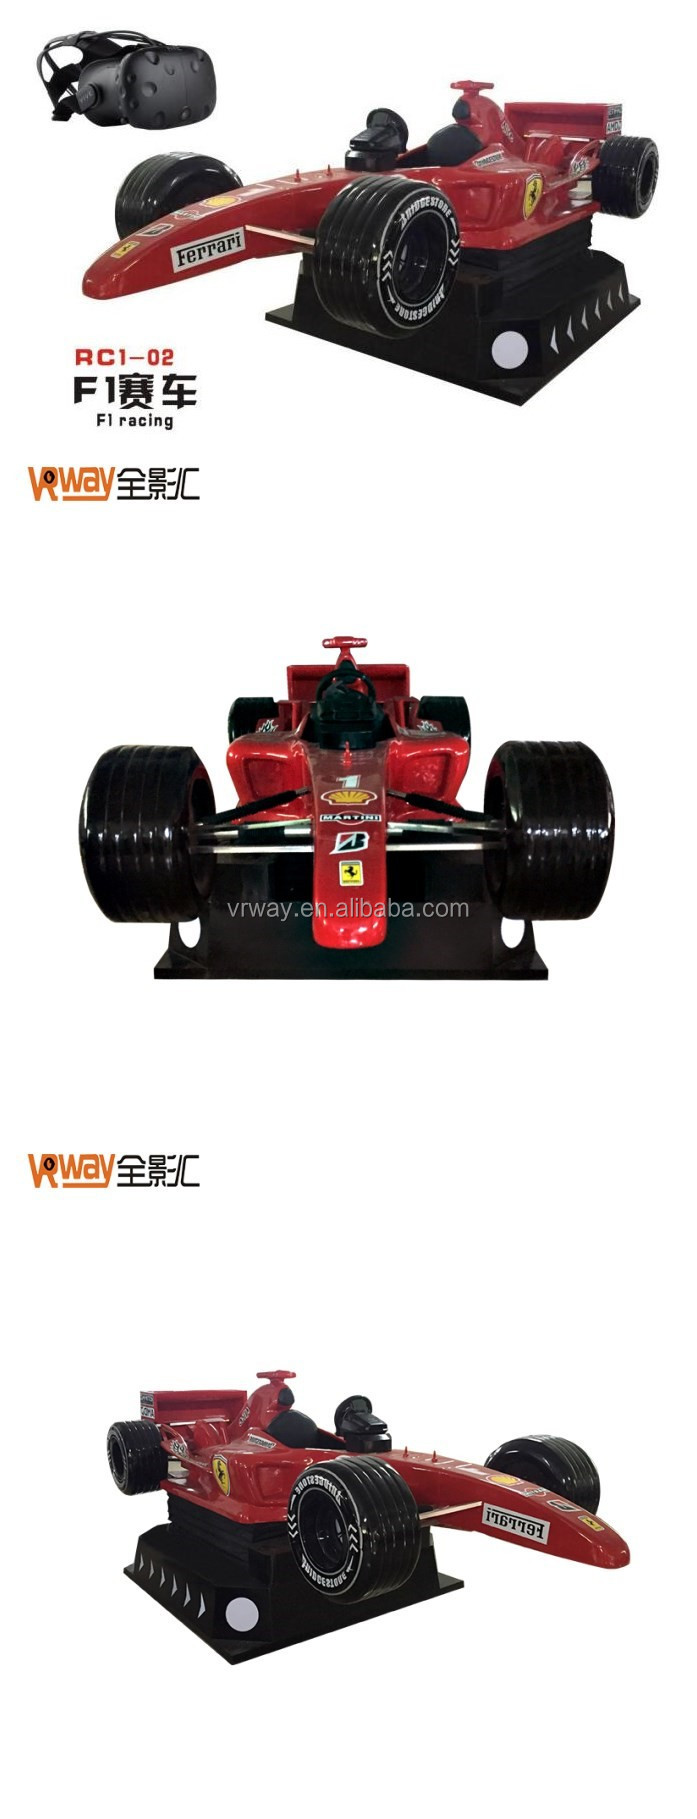 Hummer Simulator Electric Arcade Racing 9d Vr Car Game Buy Product On Alibabacom Machine F1 Suit Replica